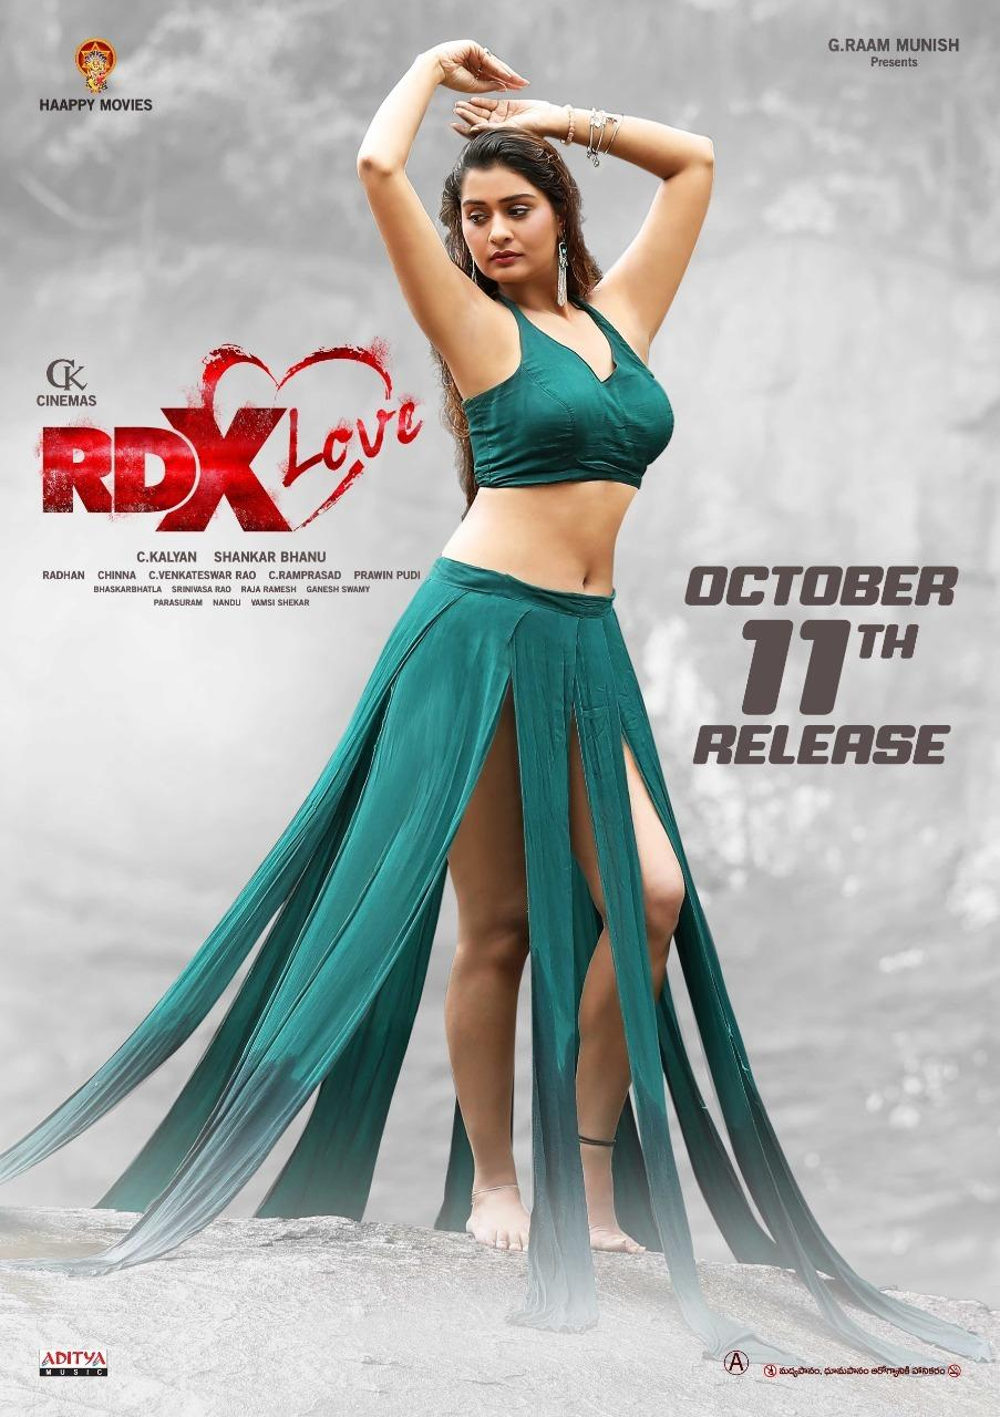 Actress Payal Rajput RDX Love movie release date on October 11th